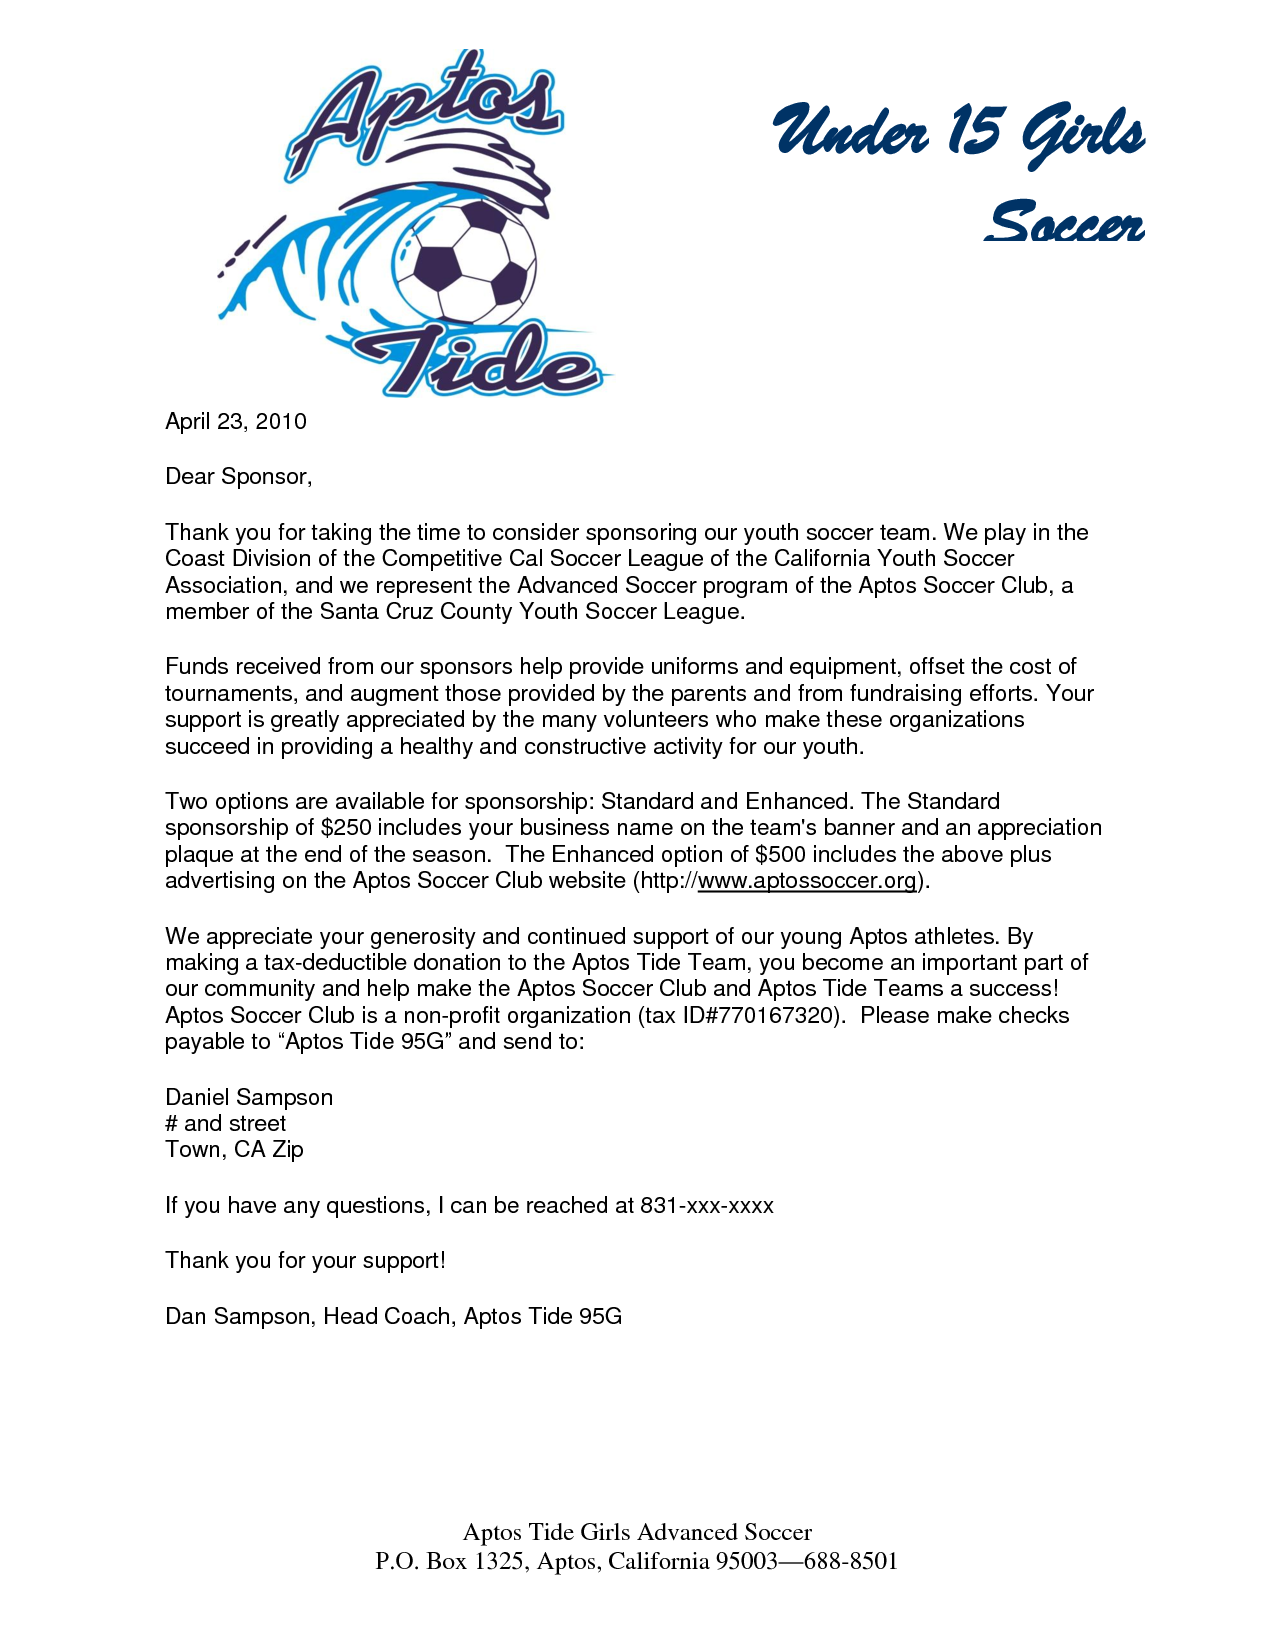 Parent thank you letter from youth athletes sponsorship letter parent thank you letter from youth athletes sponsorship letter sample expocarfo